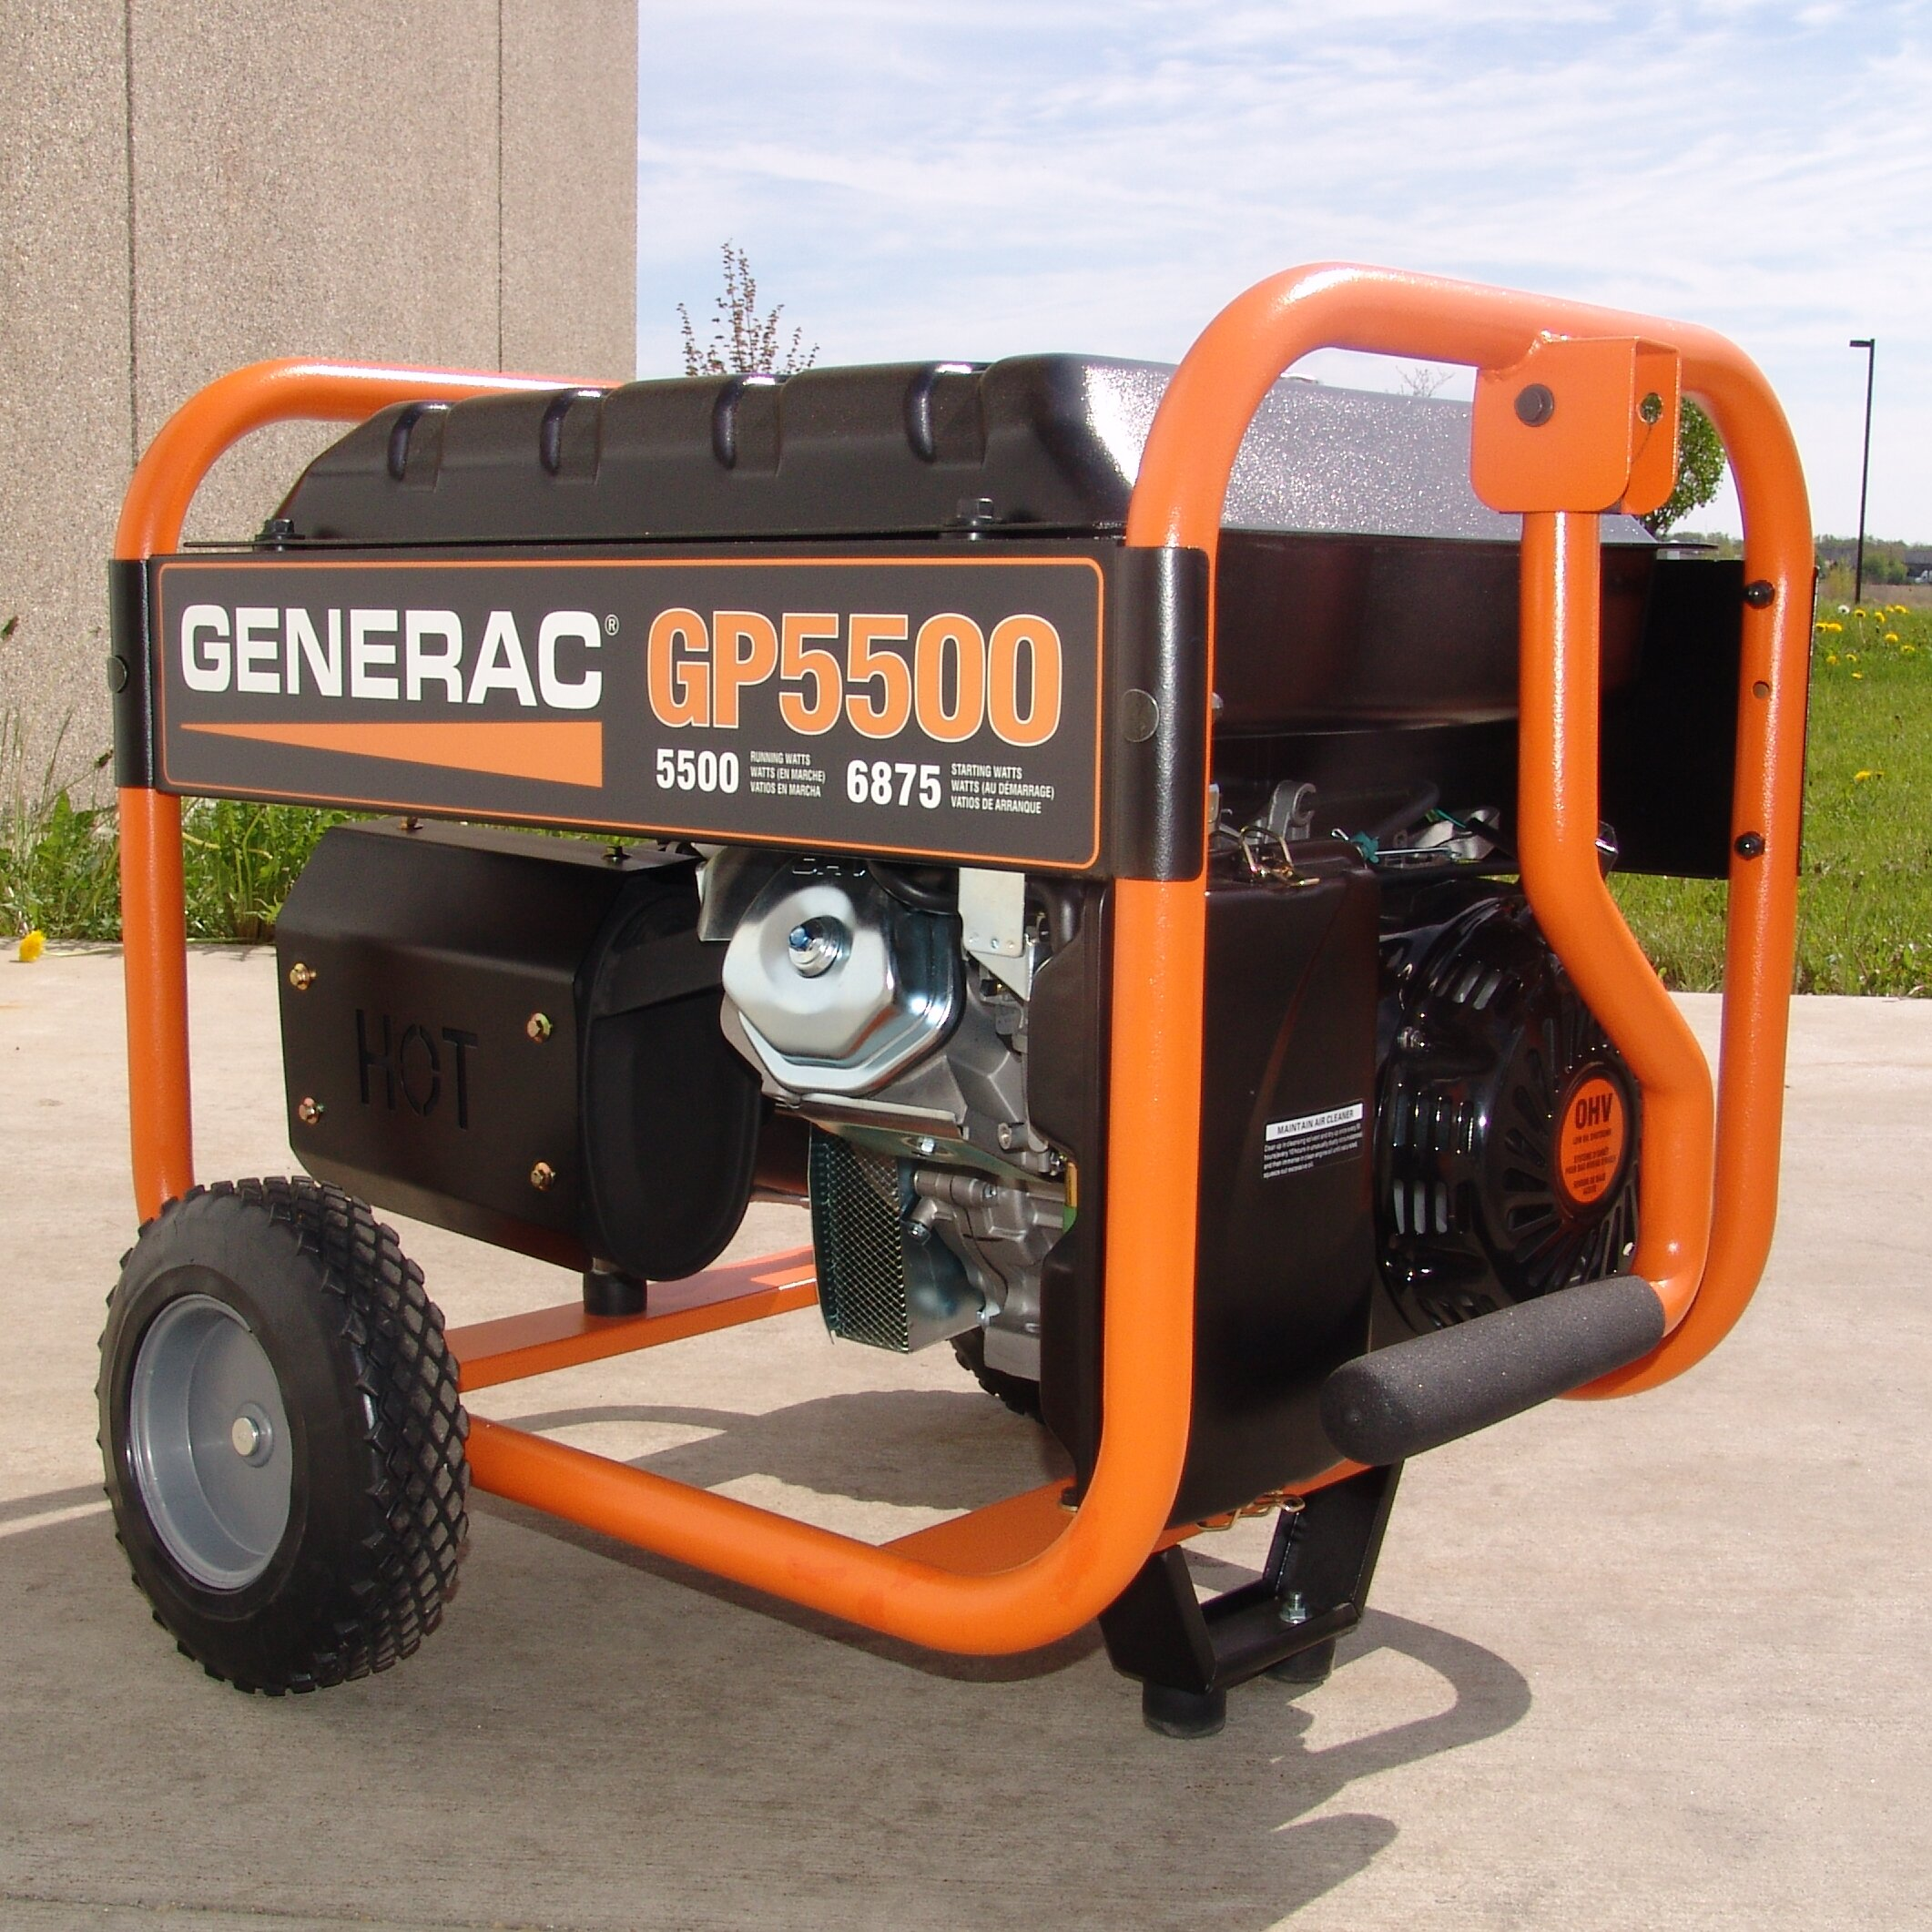 Generac 5500 Watt Portable Gasoline Generator u0026 Reviews : Wayfair